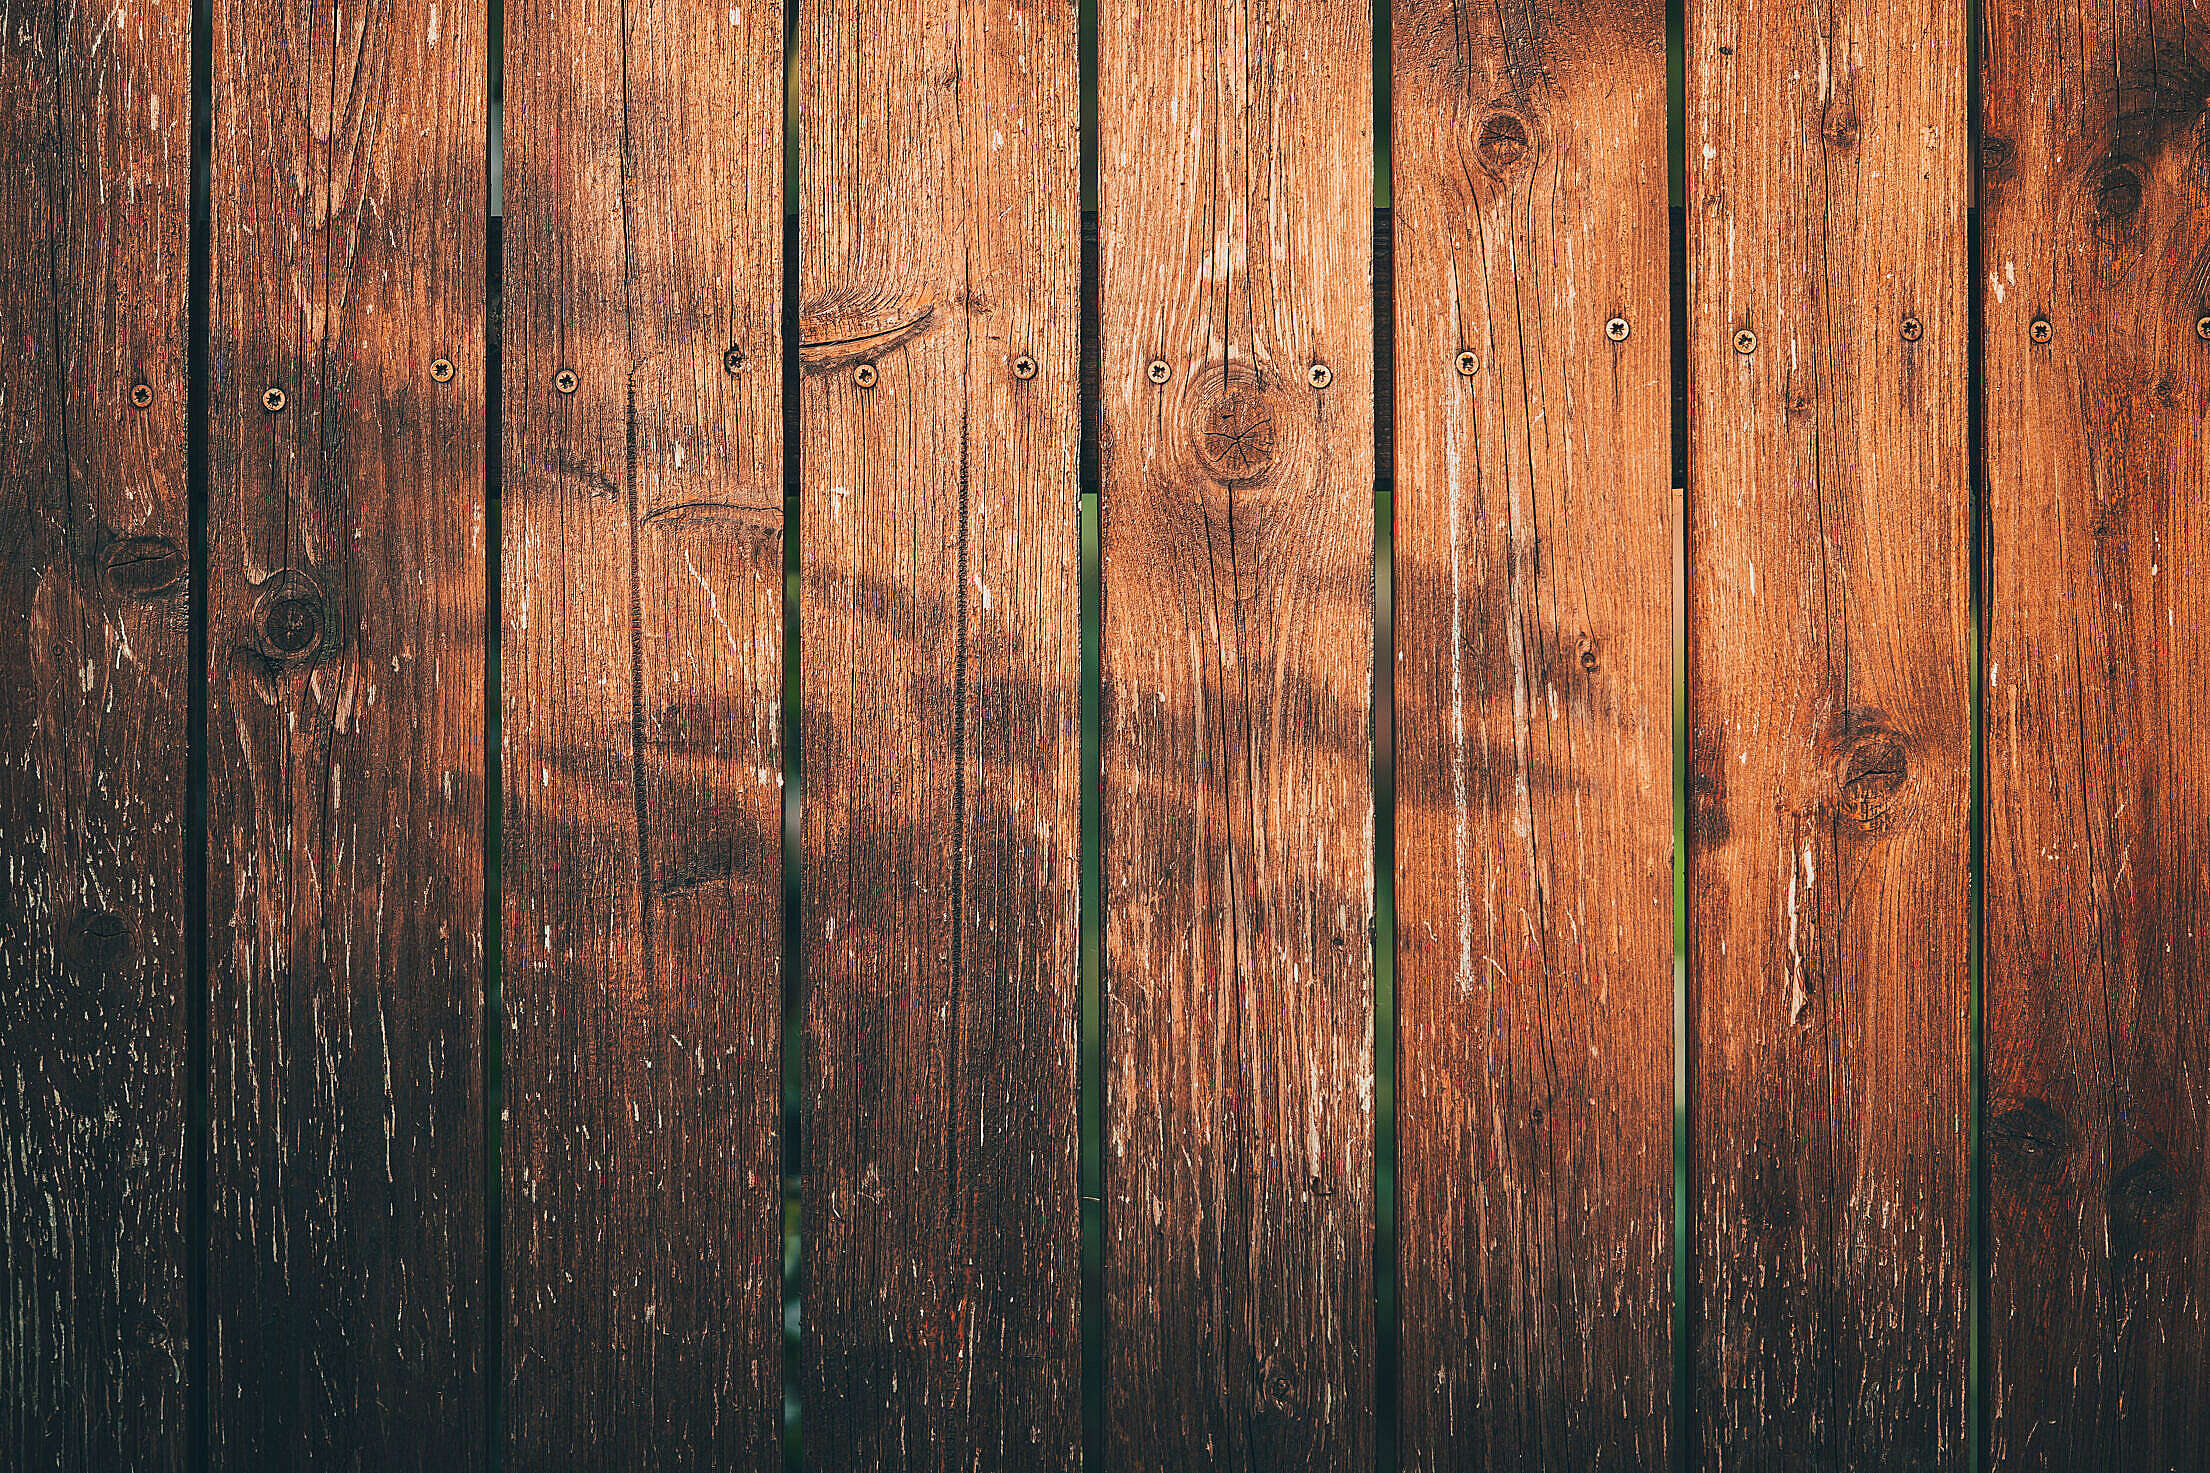 Wooden Fence Background Free Stock Photo